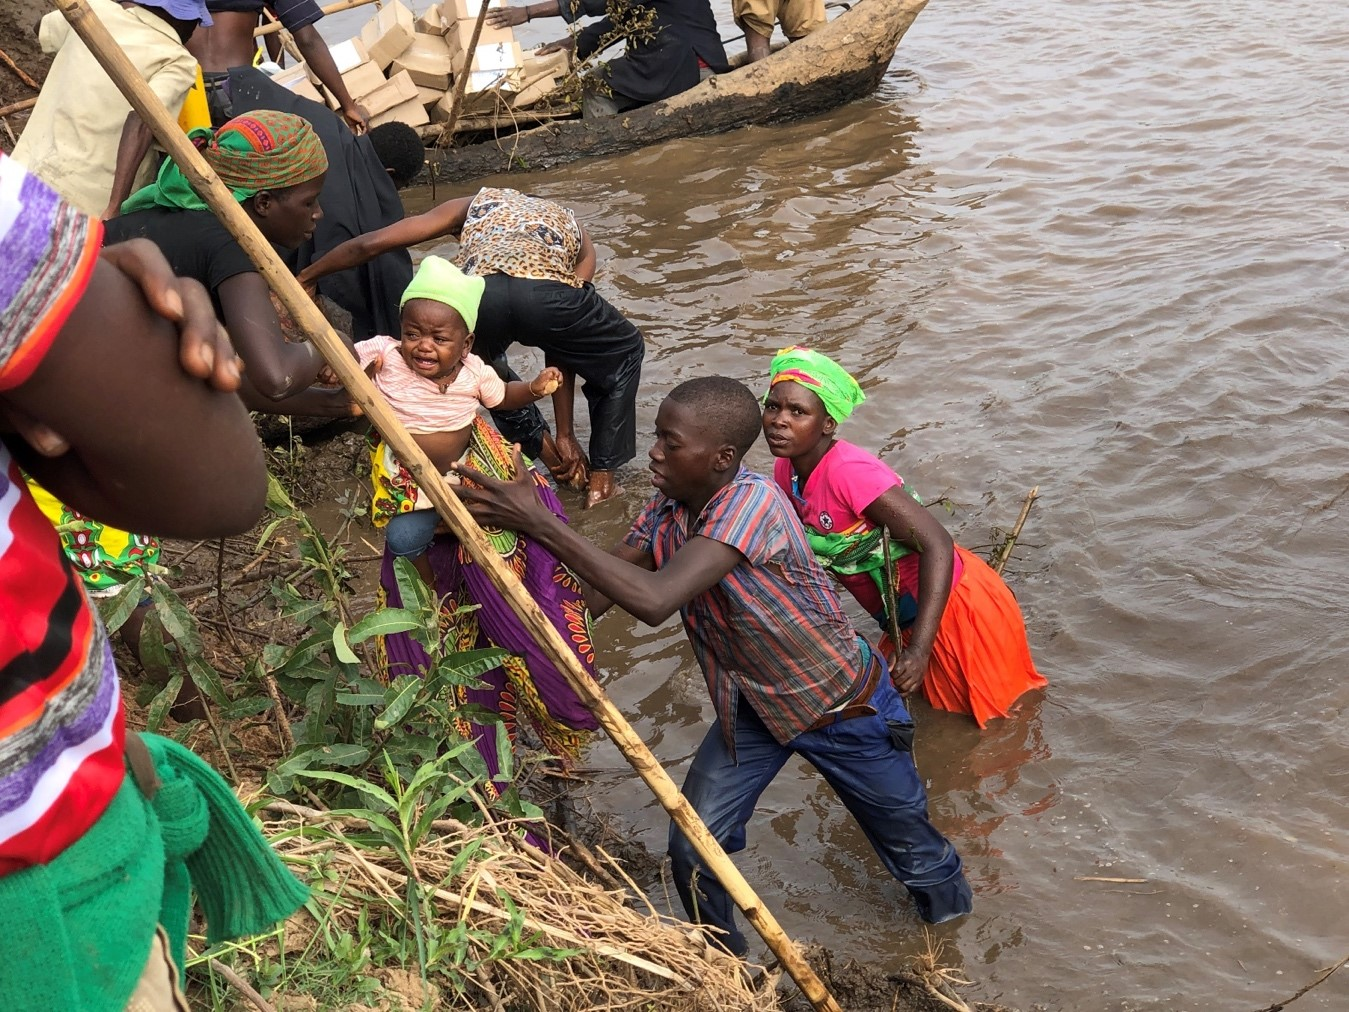 People displaced by Cyclone Idai outside of Chimoio desperately cross a river to receive their first food distribution following the storm. More than two months after the cyclone, some Mozambicans who lost their homes and farmland were still searching for ways to feed themselves and their families.